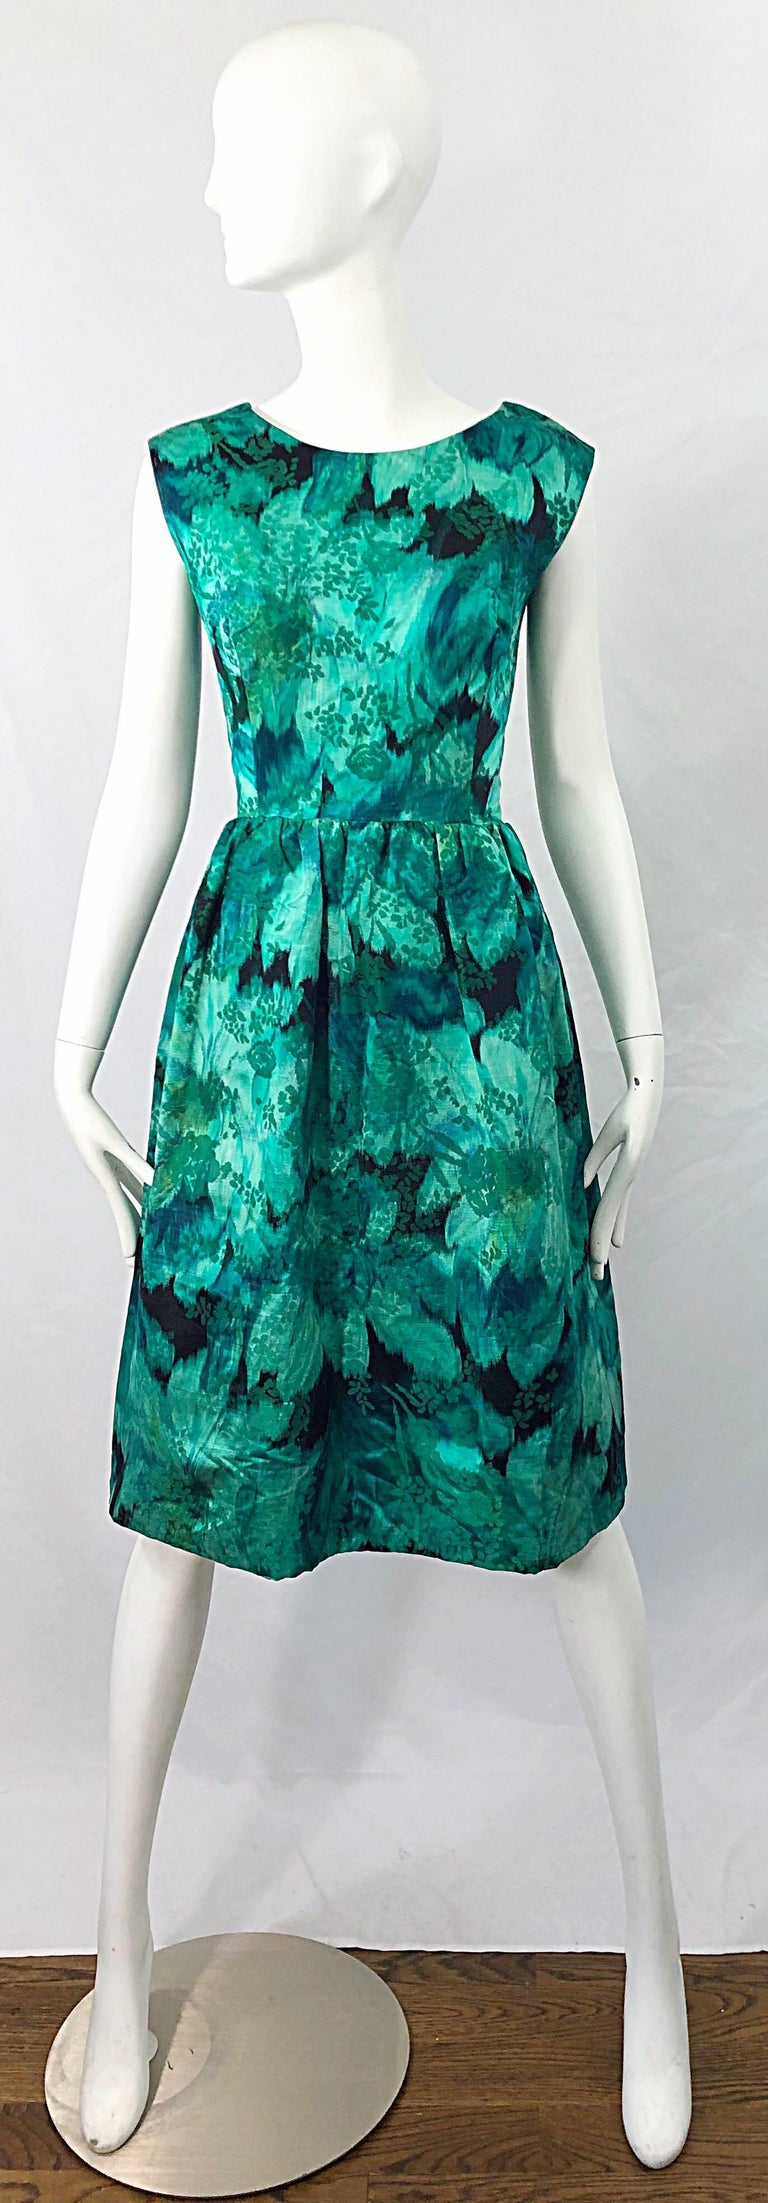 Beautiful 1950s demi couture green botanical floral print silk fit n' flare sleeveless dress ! Features various shade of green throughout. Hidden metal zipper up the back with hook-and-eye closure. Can easily be worn for any day or evening event.